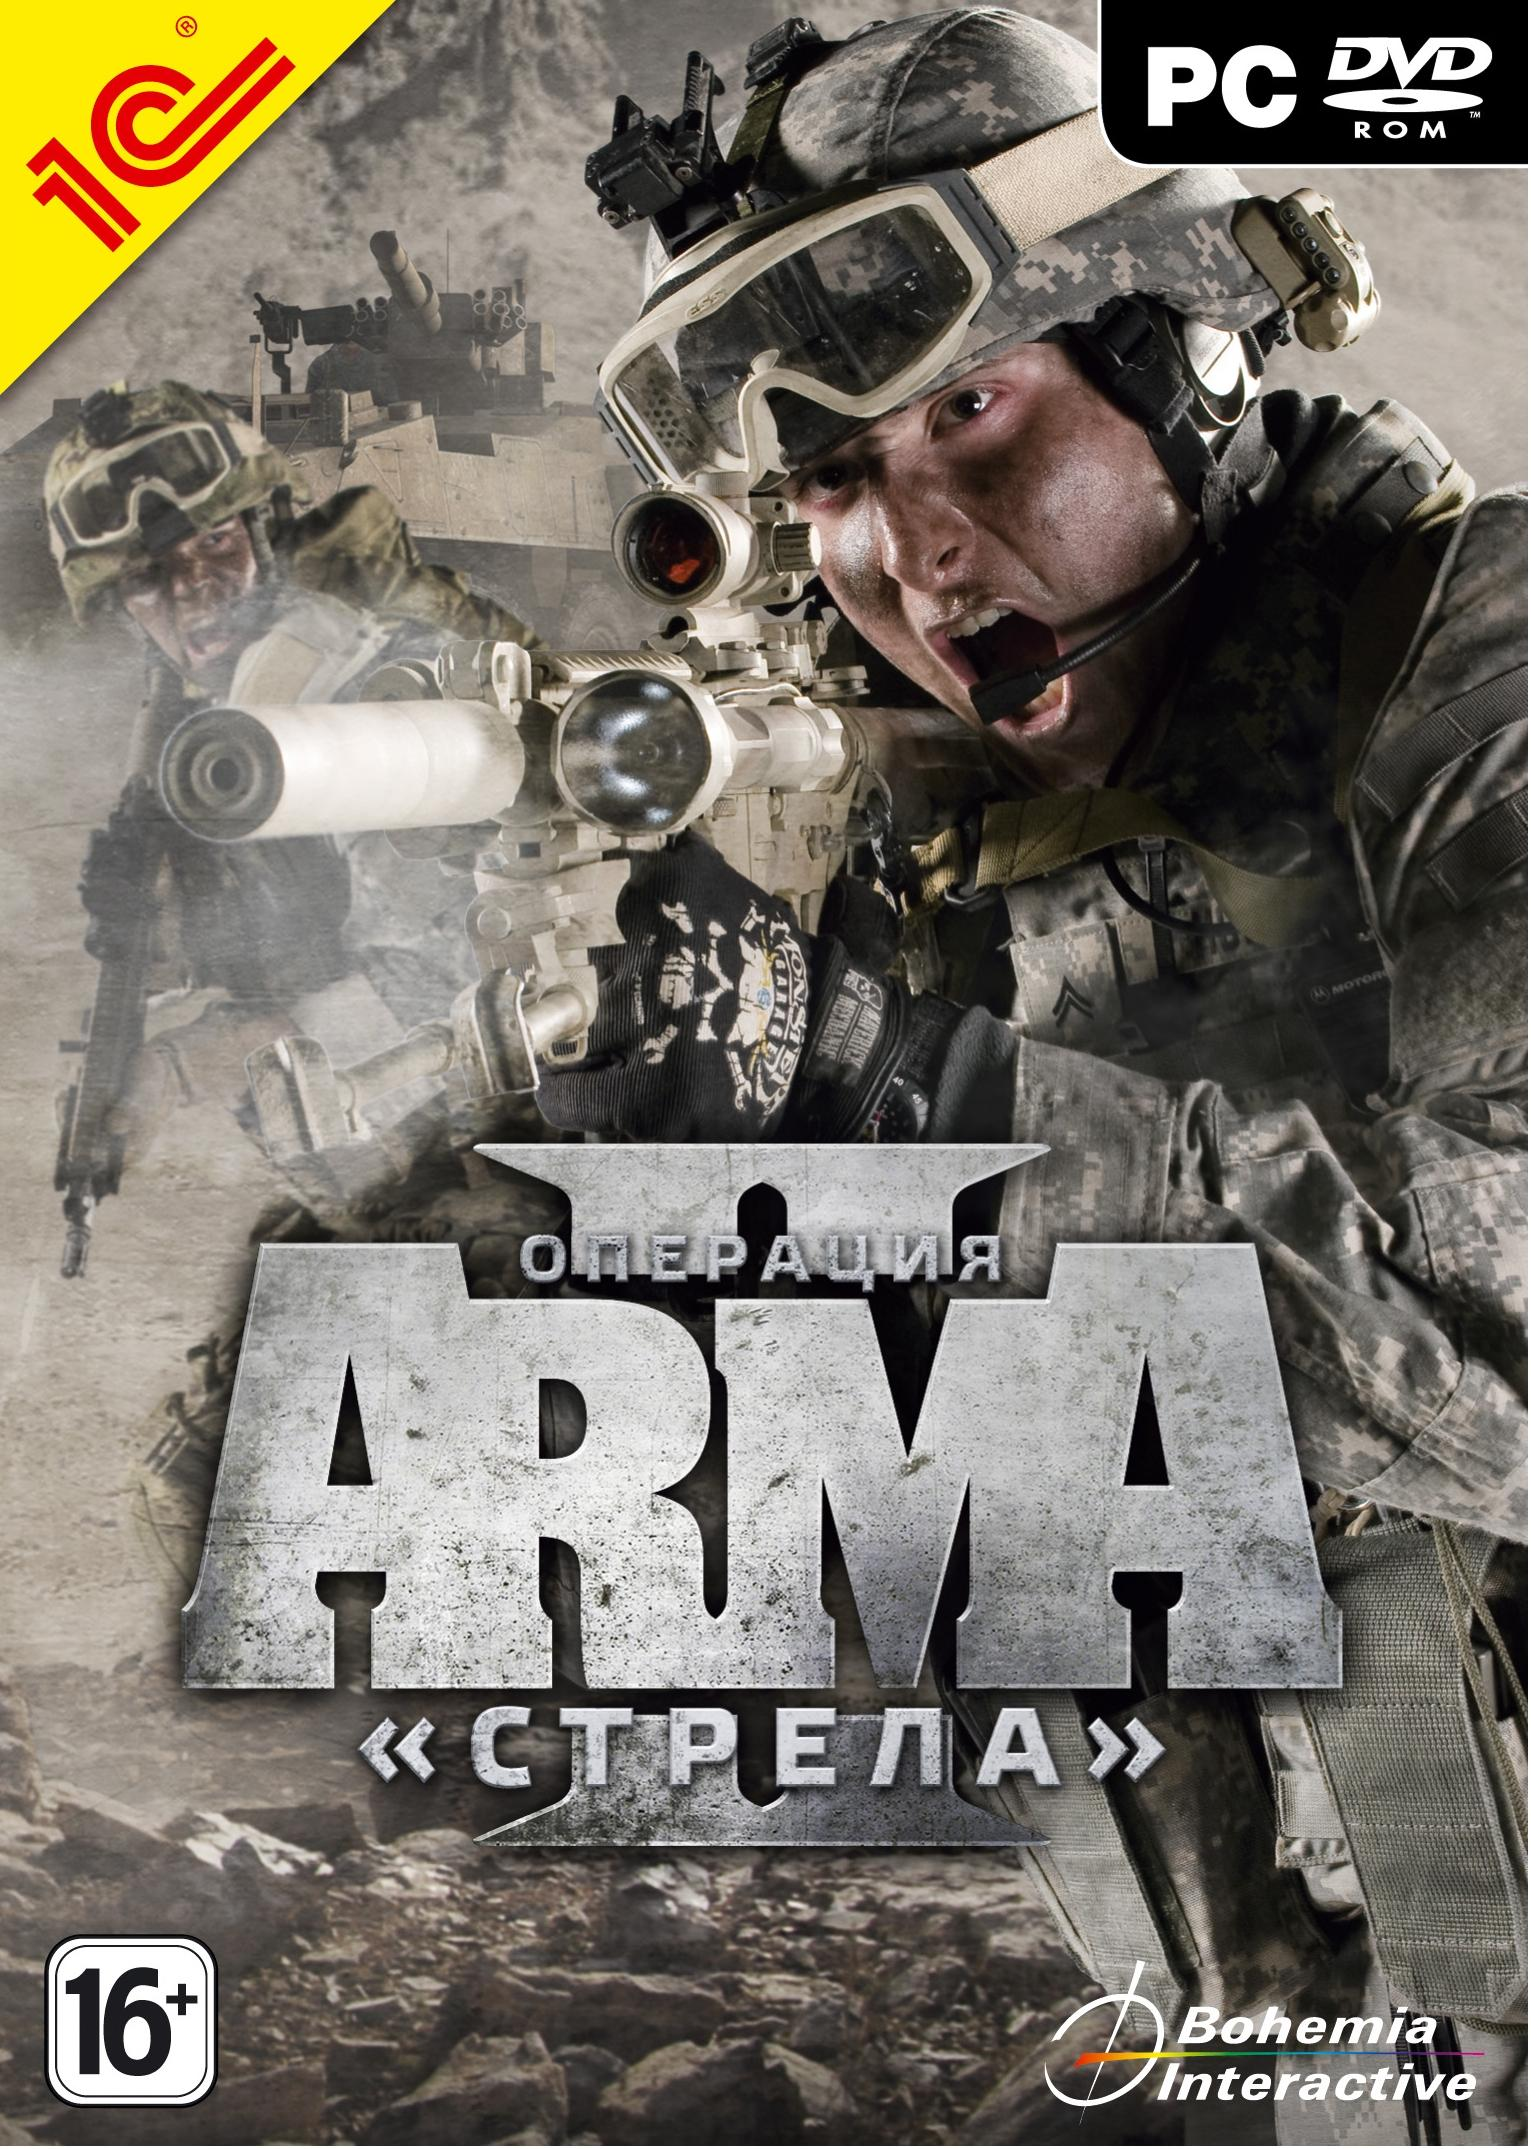 ARMA II 2 Operation Arrowhead (STEAM KEY/ROW)